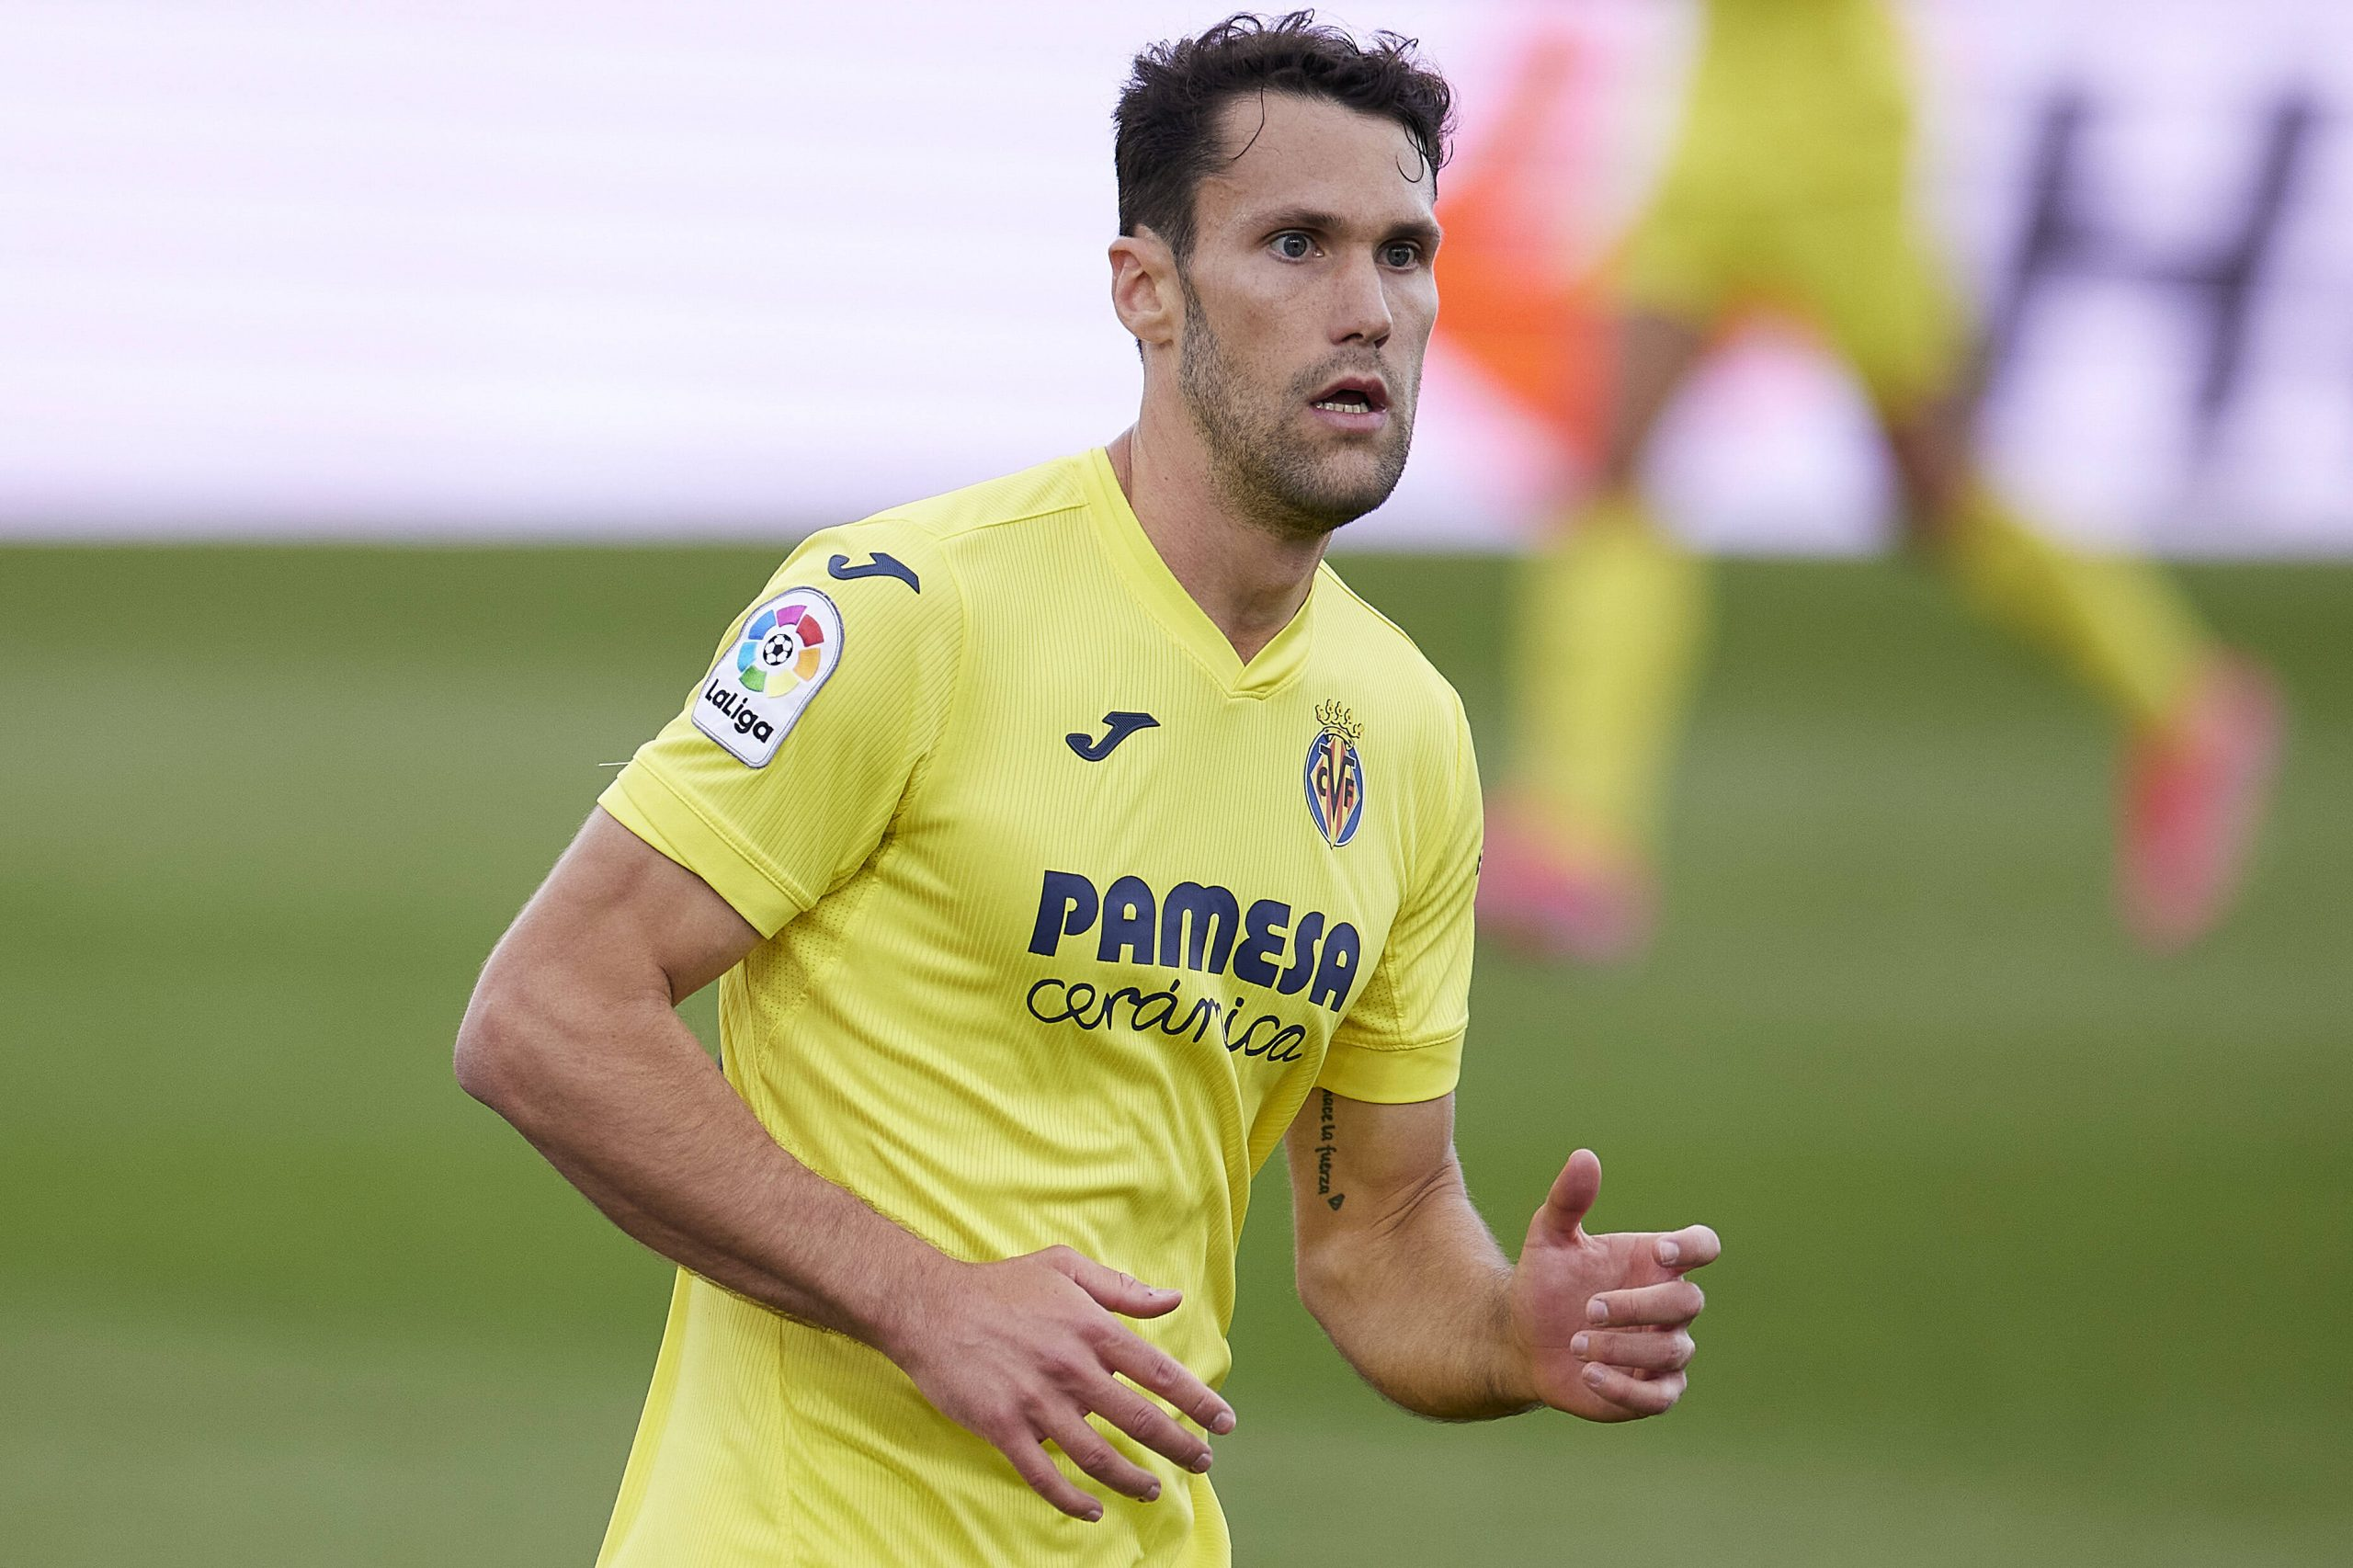 Villarreal star, Alfonso Pedraza, is on the transfer radar of Chelsea, AC Milan, Napoli, and Barcelona.